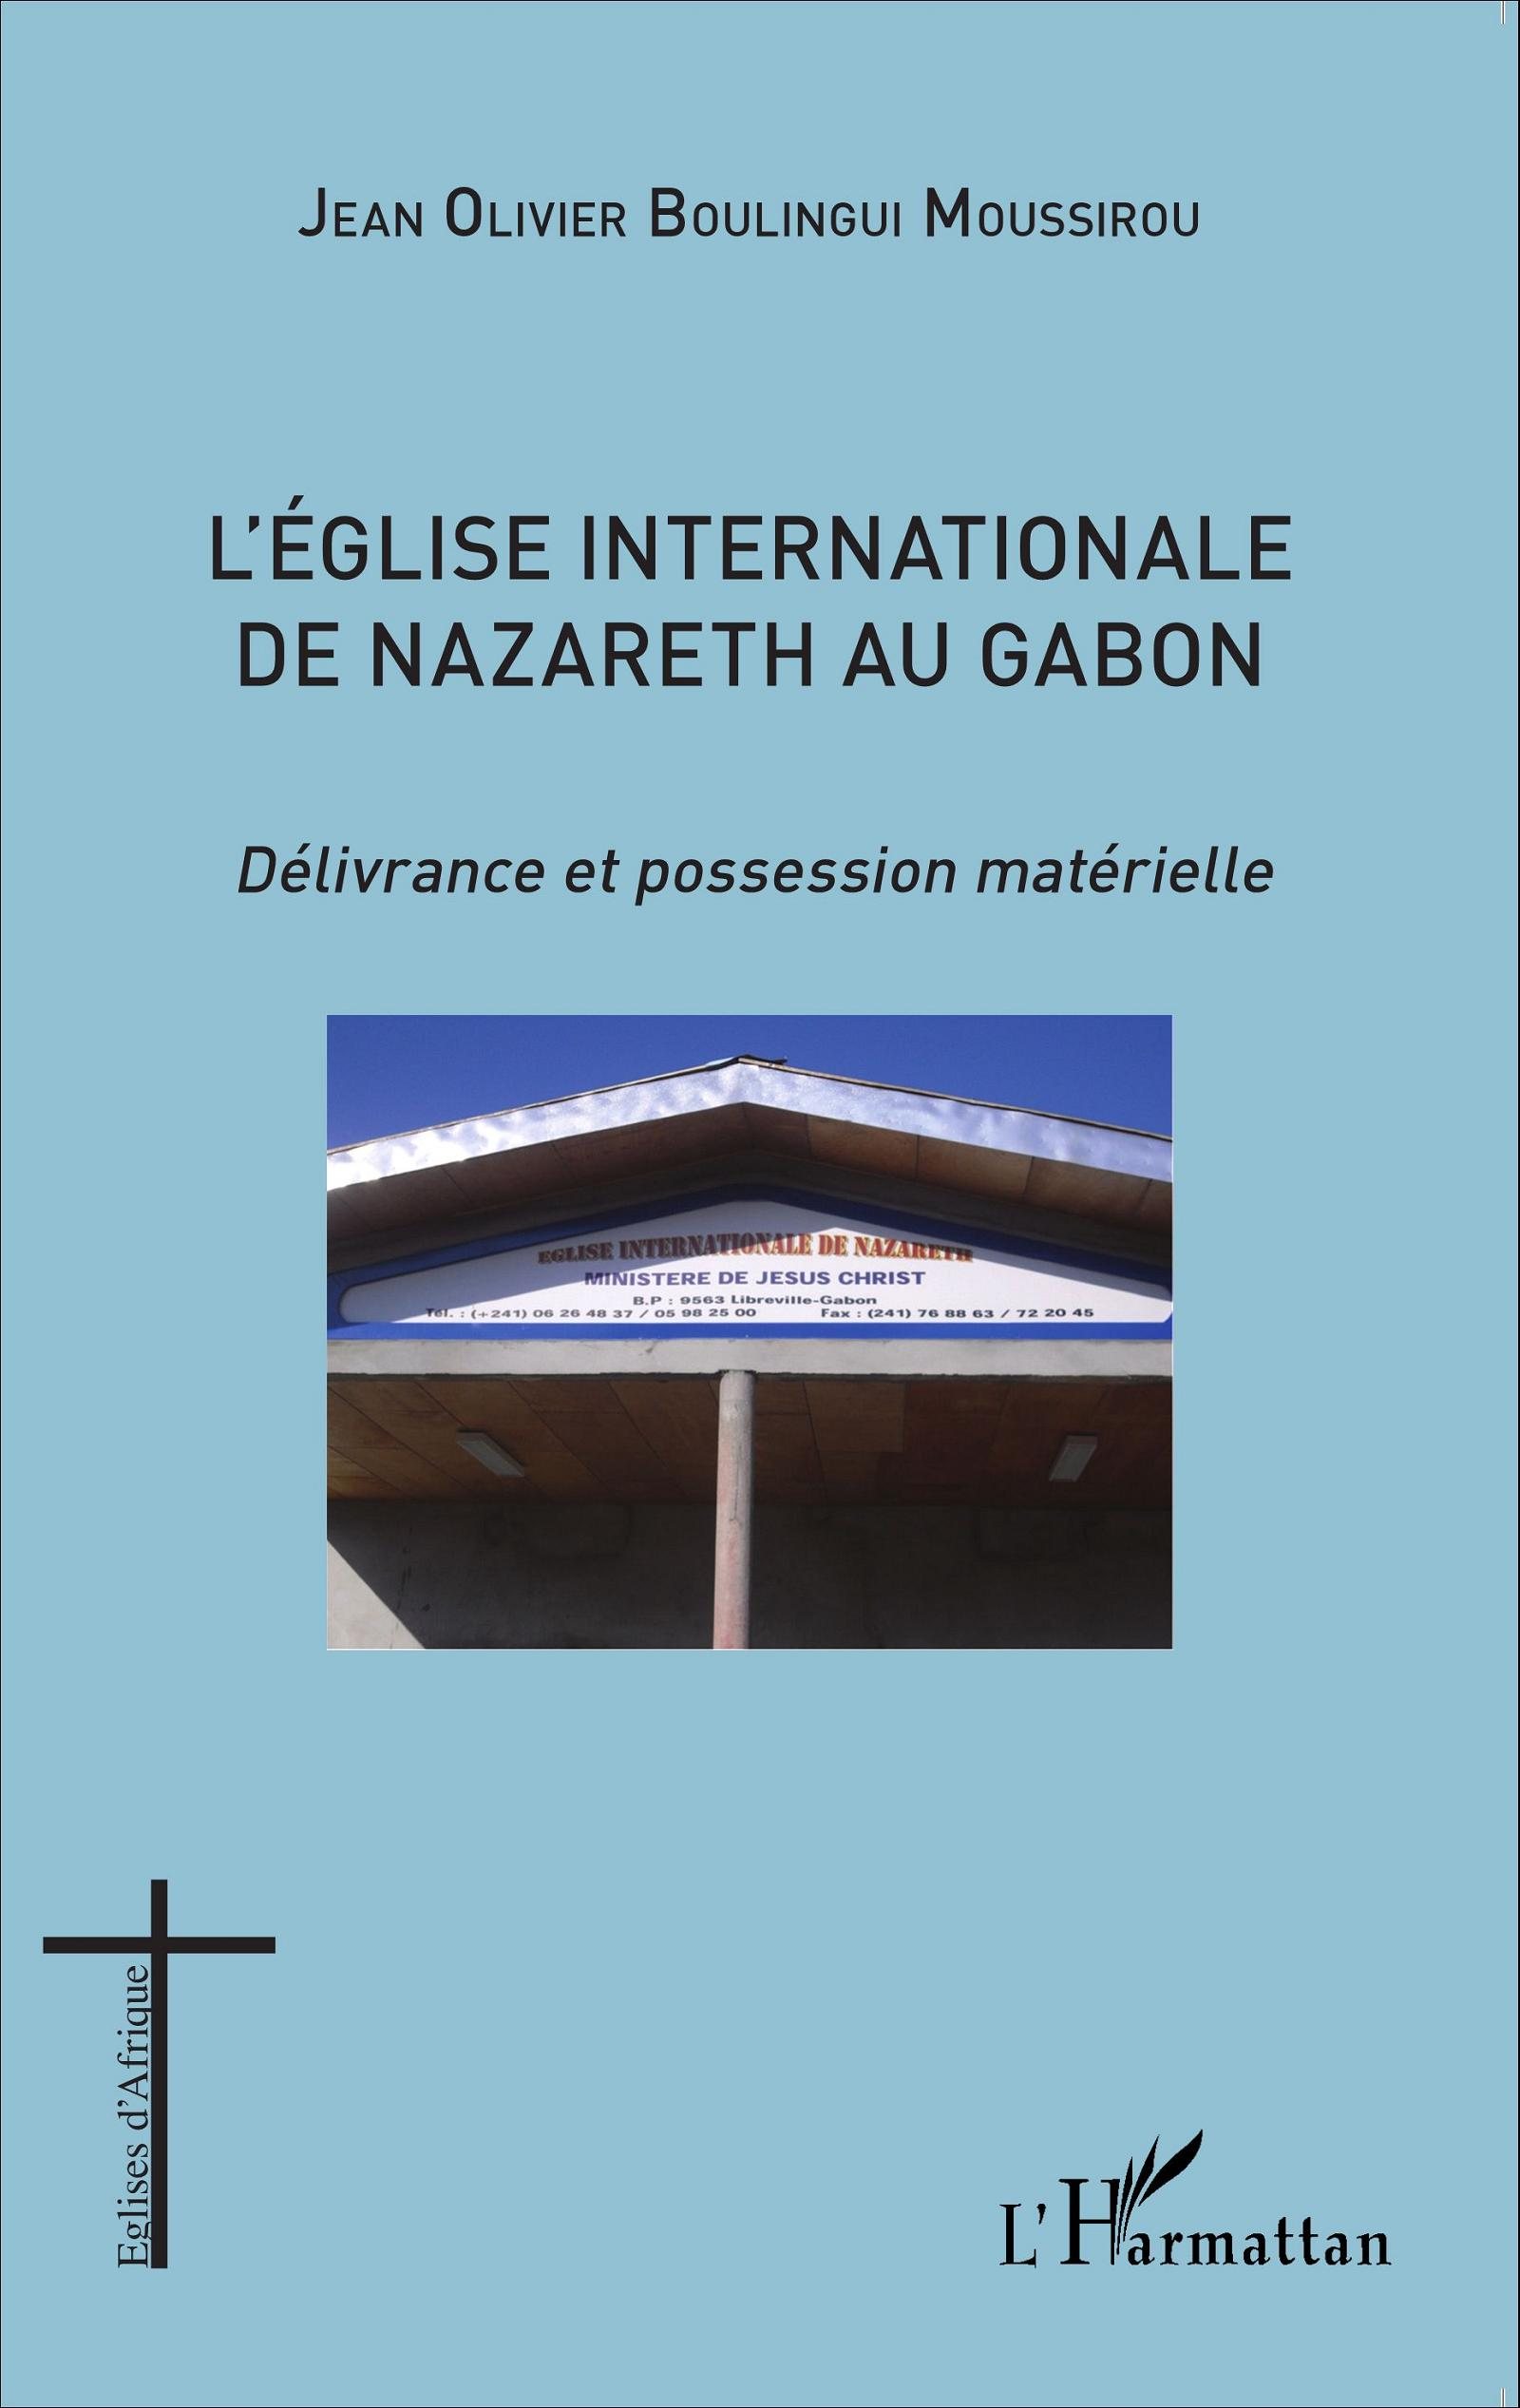 L'église internationale de Nazareth au Gabon